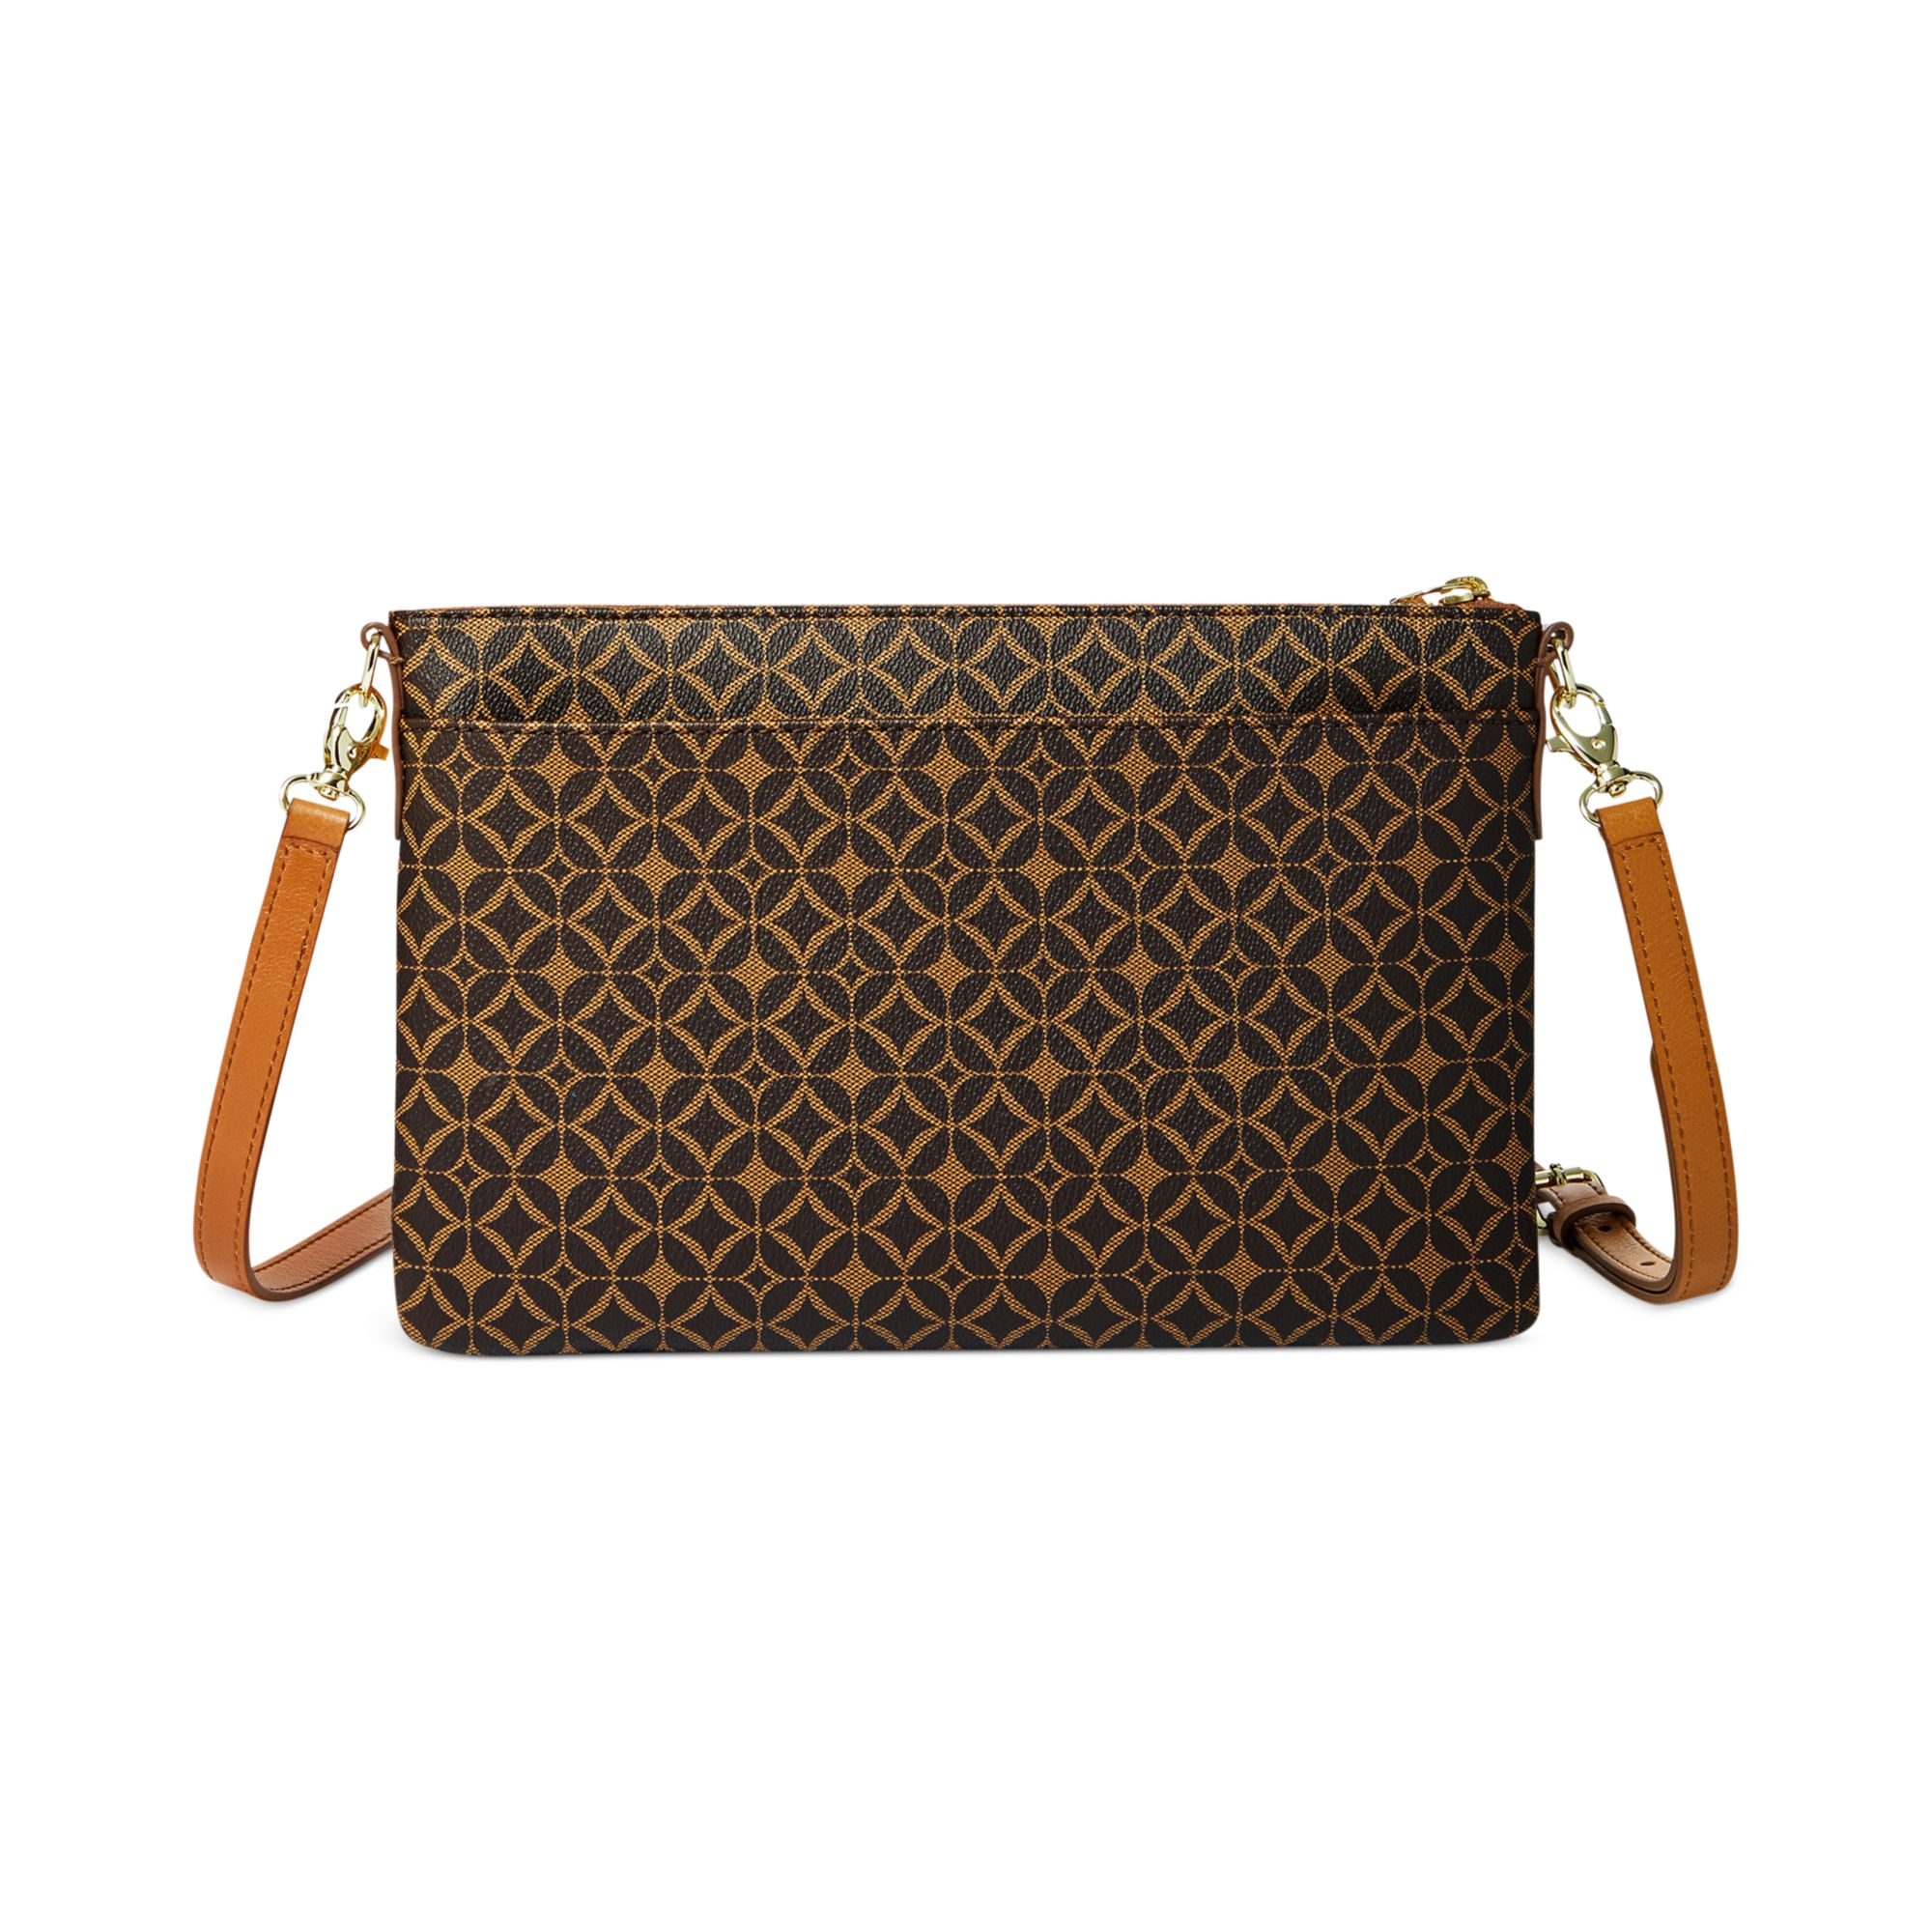 I Ve Also Bought My Daughter A Sydney Crossbody Bag In The Brown Print This Will Be Gift Was 69 Cdn At Winners Too